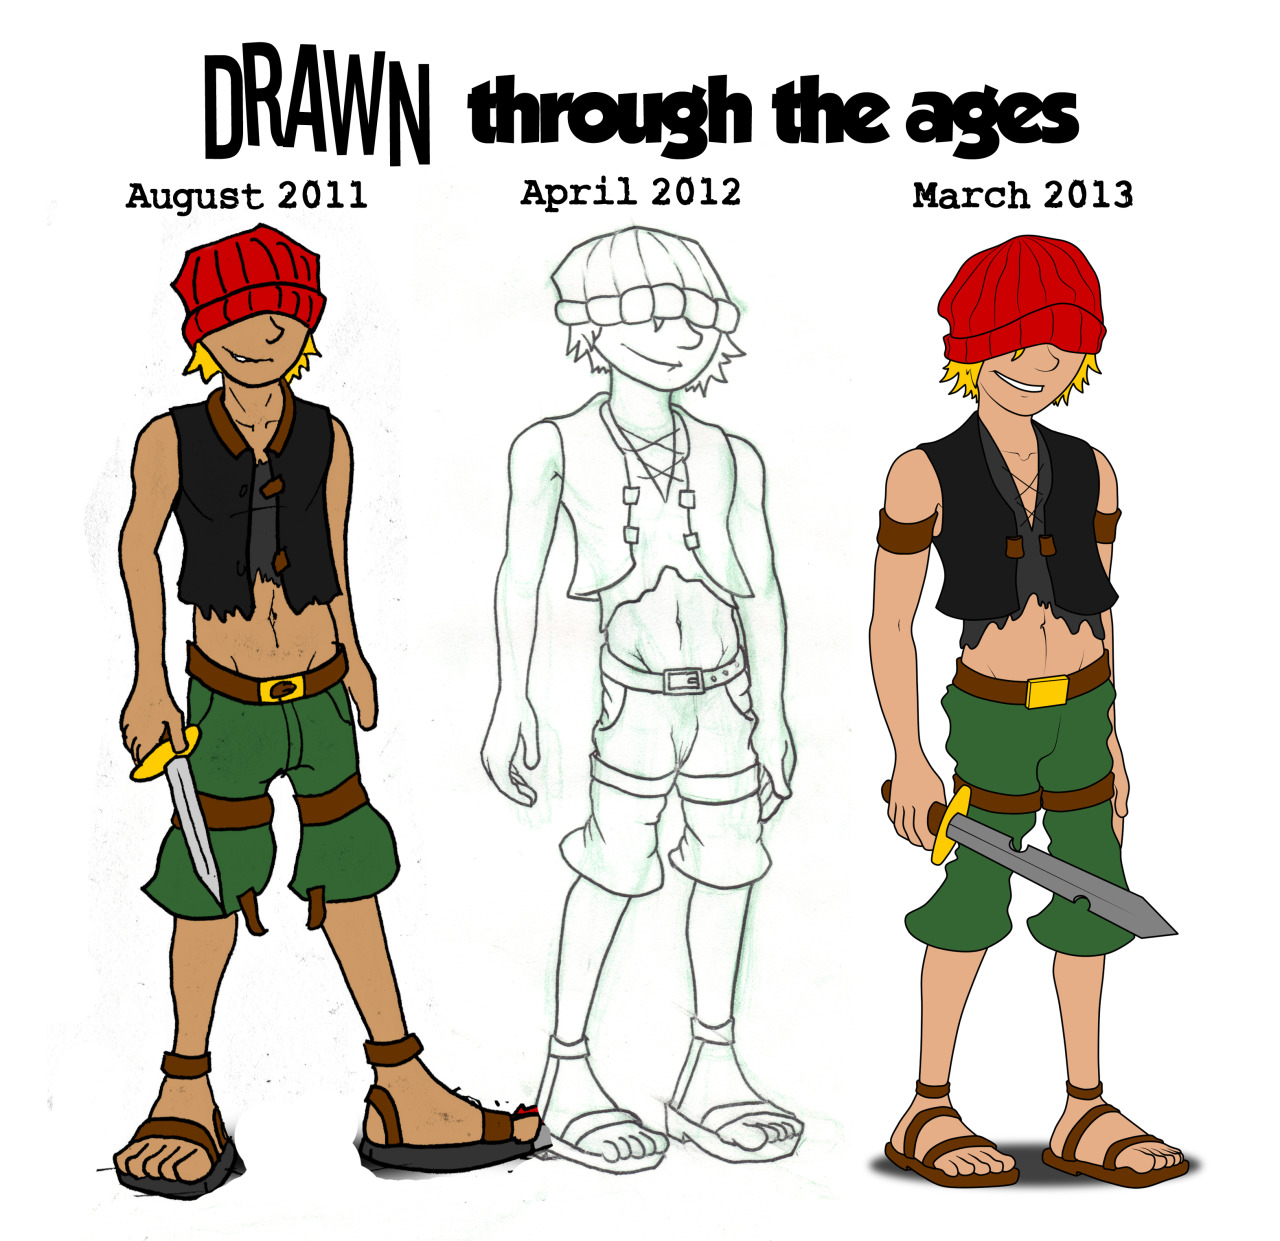 Drawn Through The Ages I went through many different art styles before arriving at the one I currently use. Check out the first drawing I did of Drawn back in August of 2011, all the way up to the style I use now in 2013 More comic pages coming, hang in there guys! By the way, go click on some of those advertisements at the side. Even if you don't actually view them, just the clicks really helps me out!